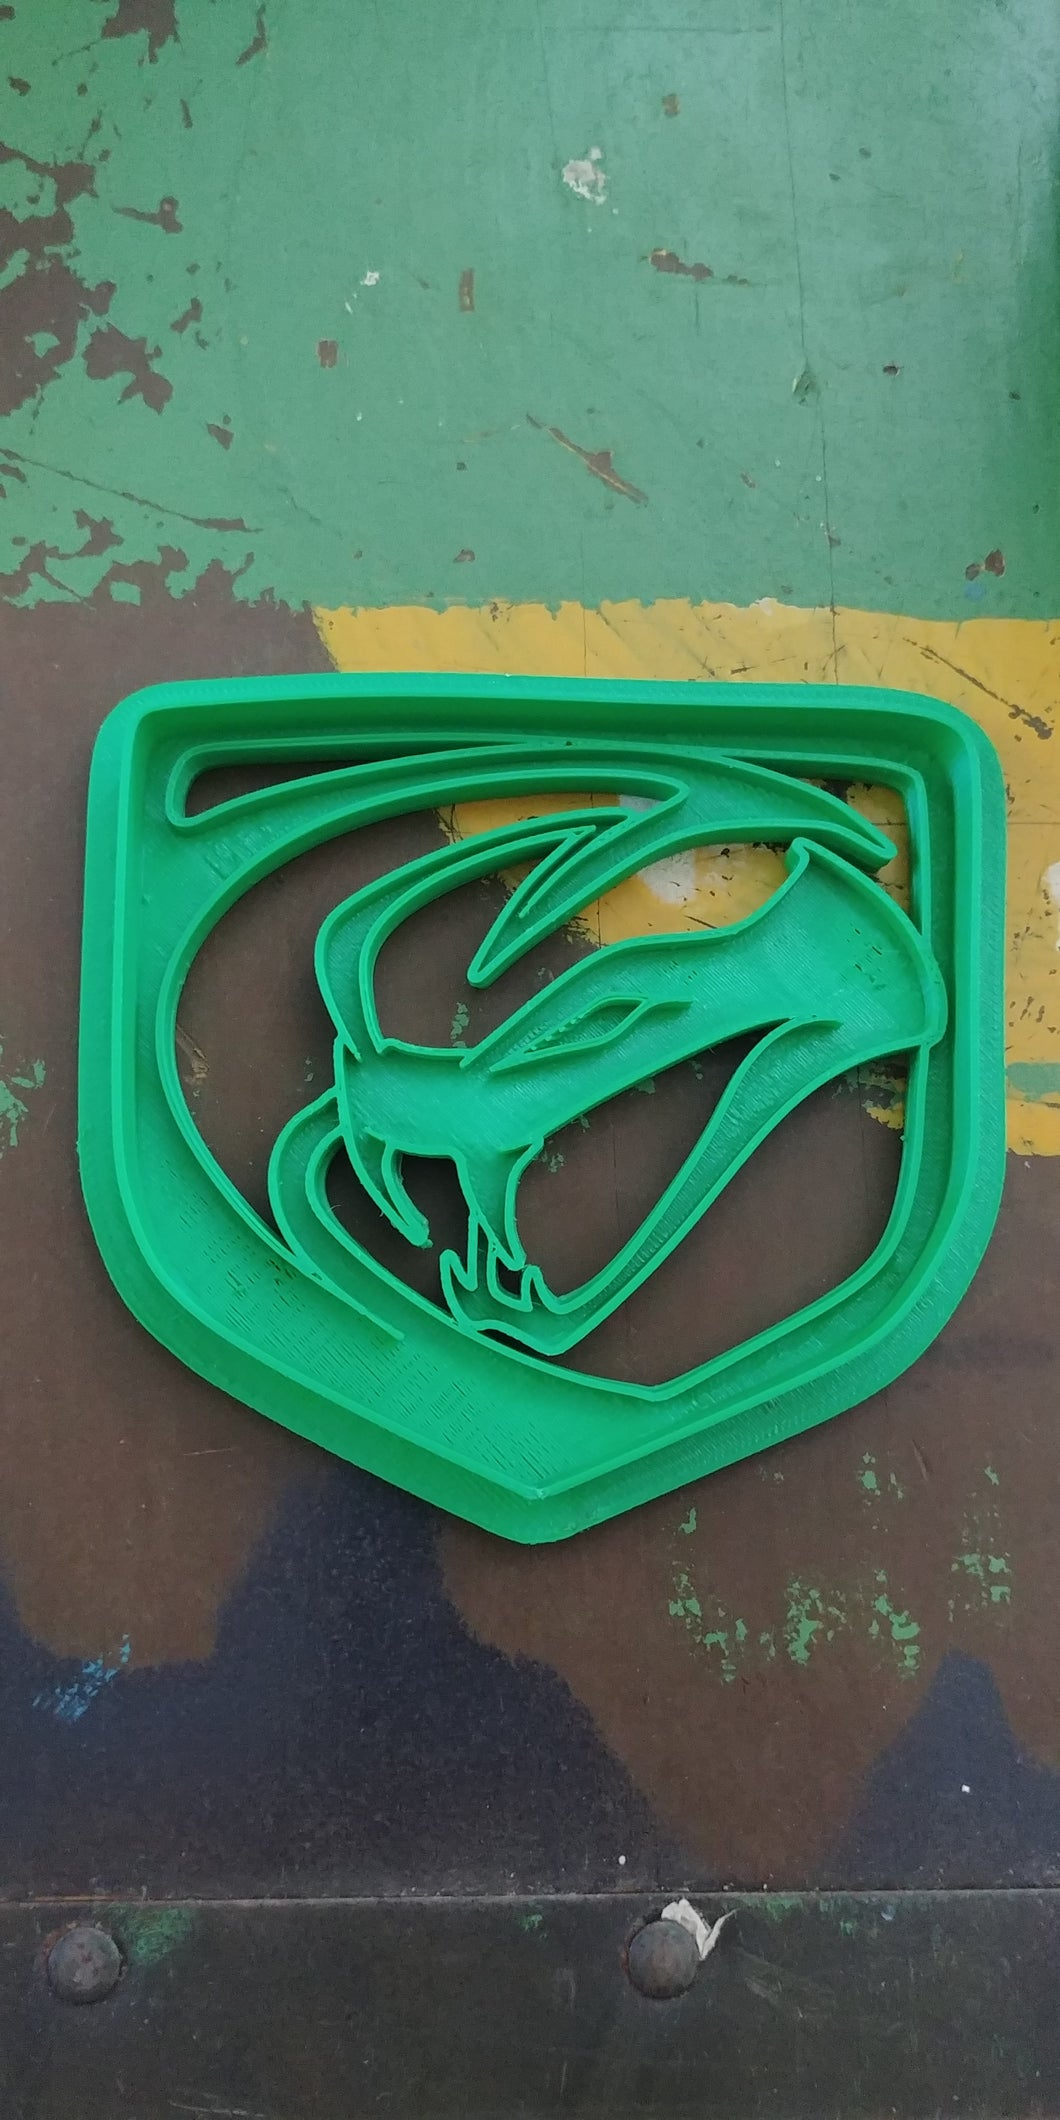 3D Printed Cookie Cutter Inspired by Dodge Viper Stryker Emblem